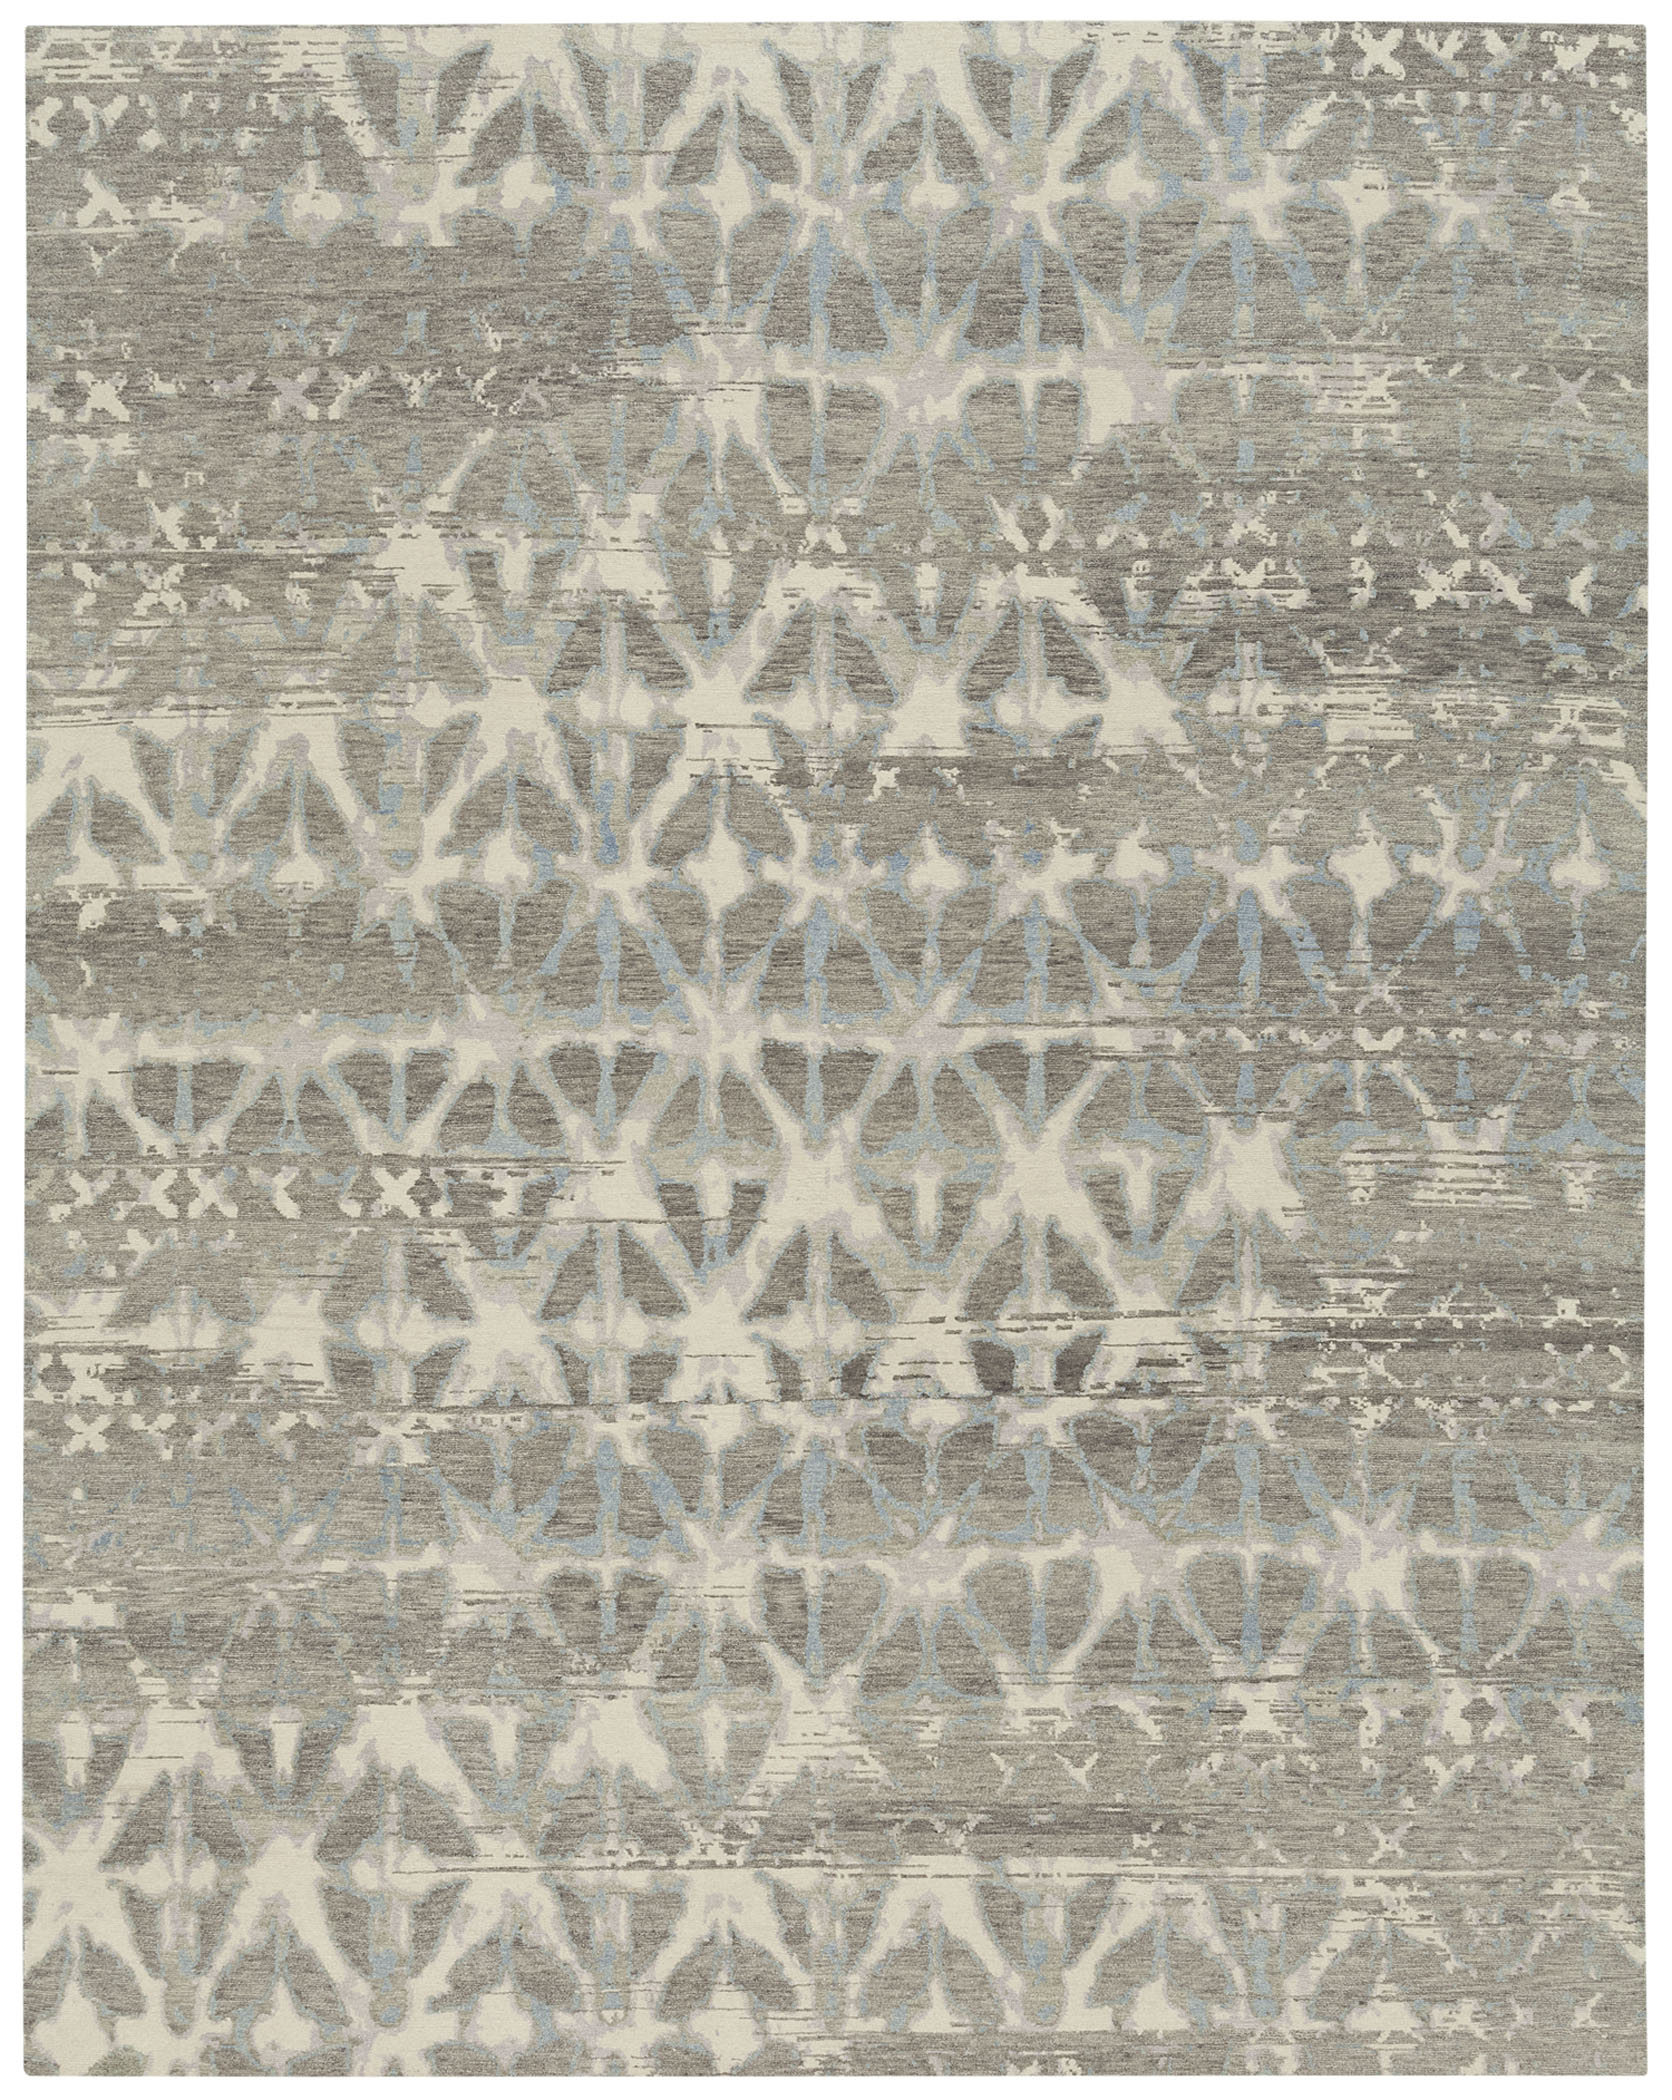 Transitional hand-knotted area rug in all-over grey pattern.